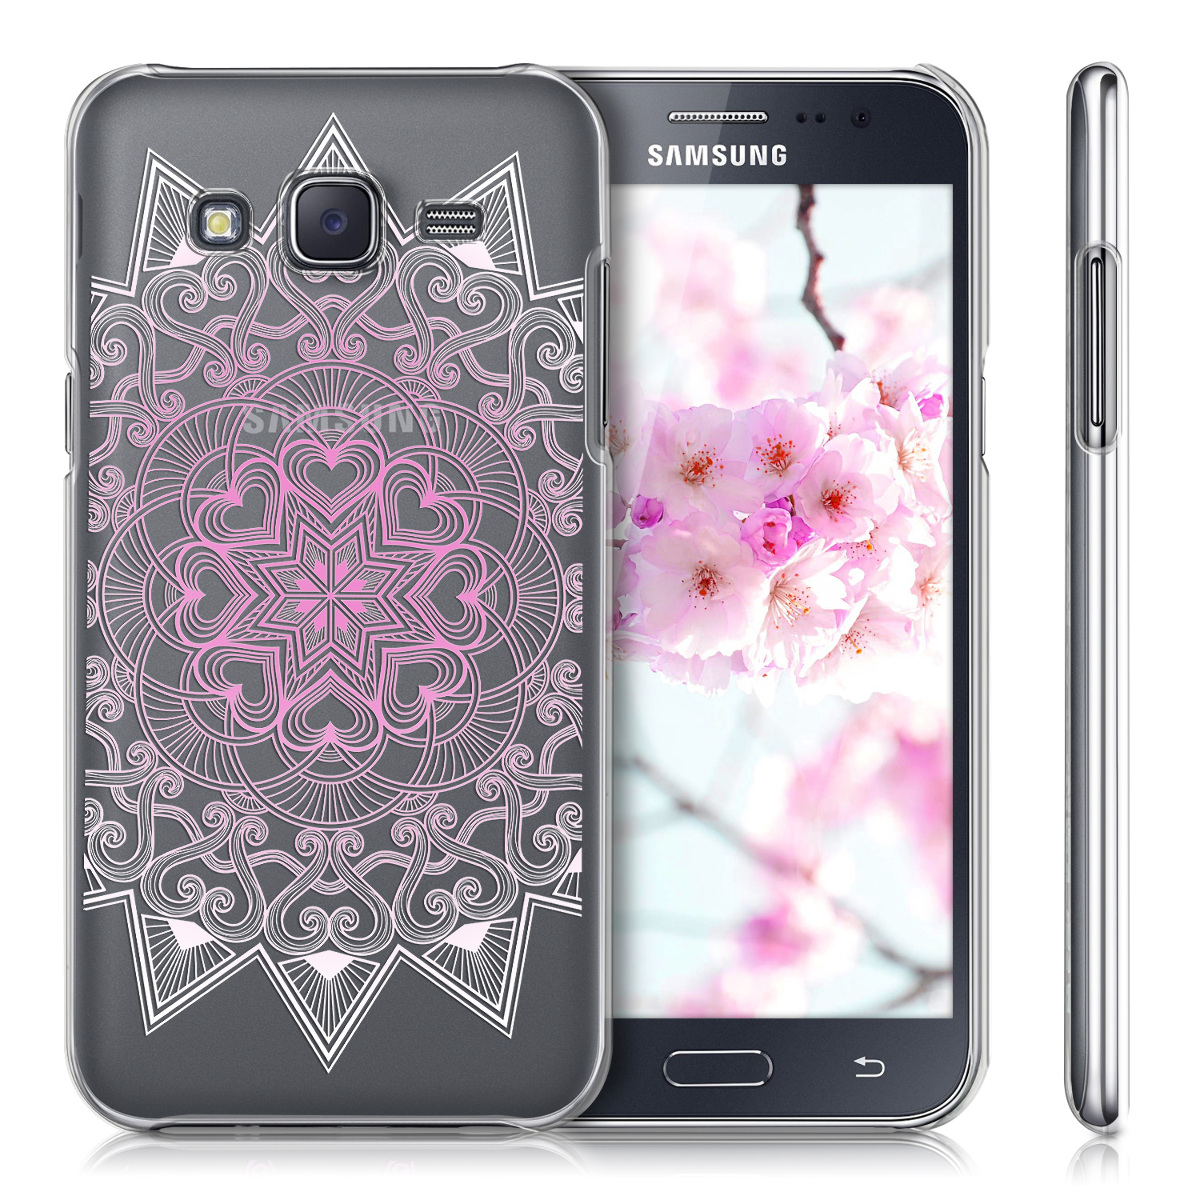 kwmobile crystal case for samsung galaxy j5 2015 clear cover hard case. Black Bedroom Furniture Sets. Home Design Ideas